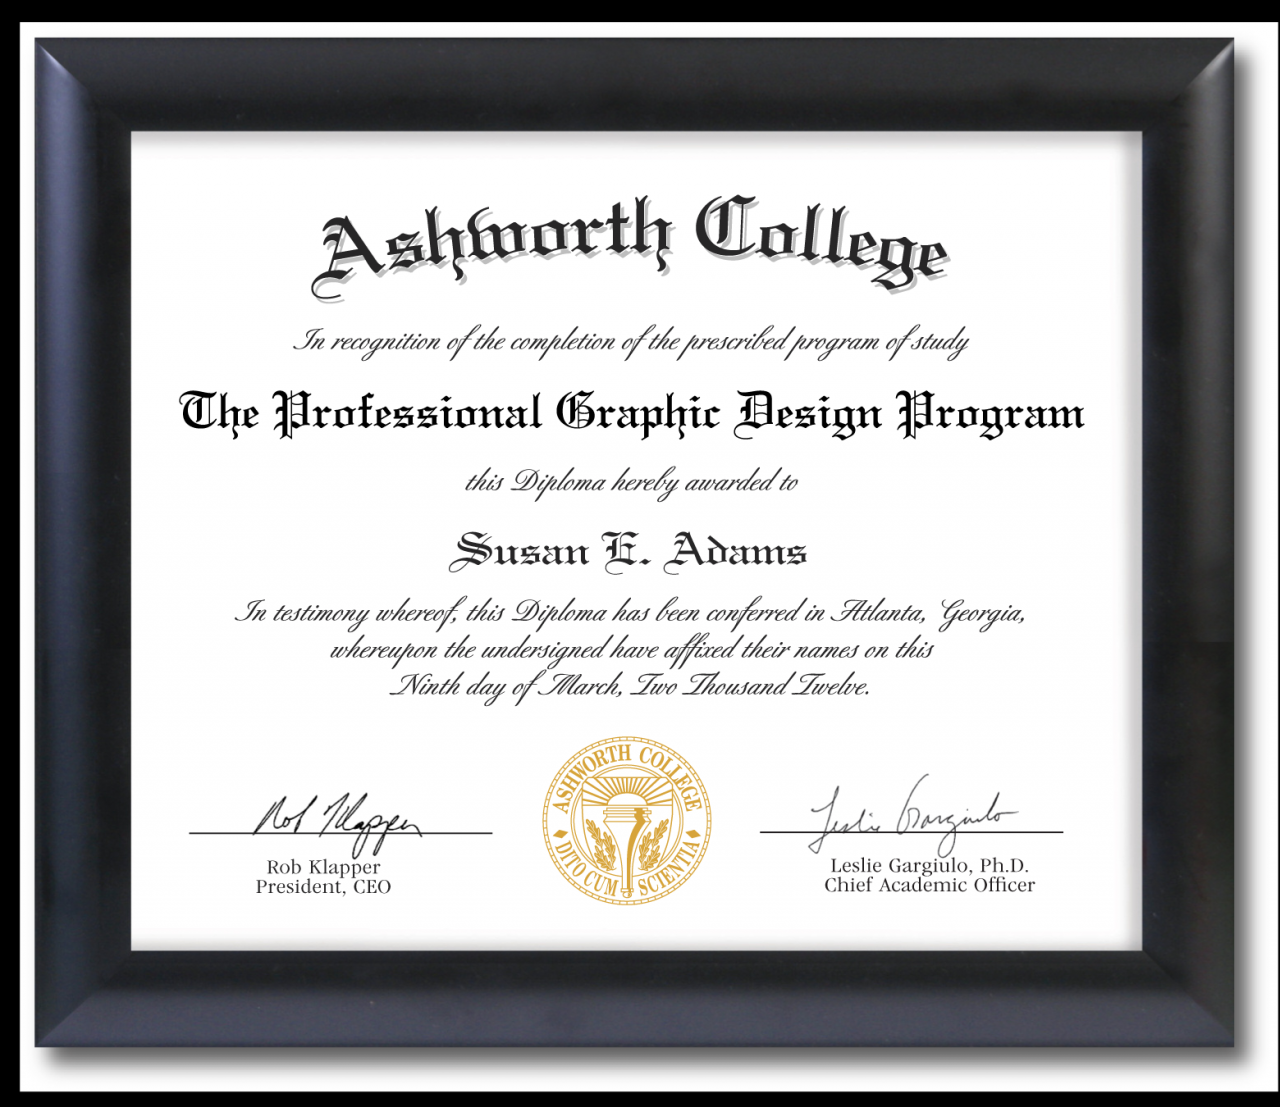 ... school diploma - Ashworth University Online | Colleges & Universities